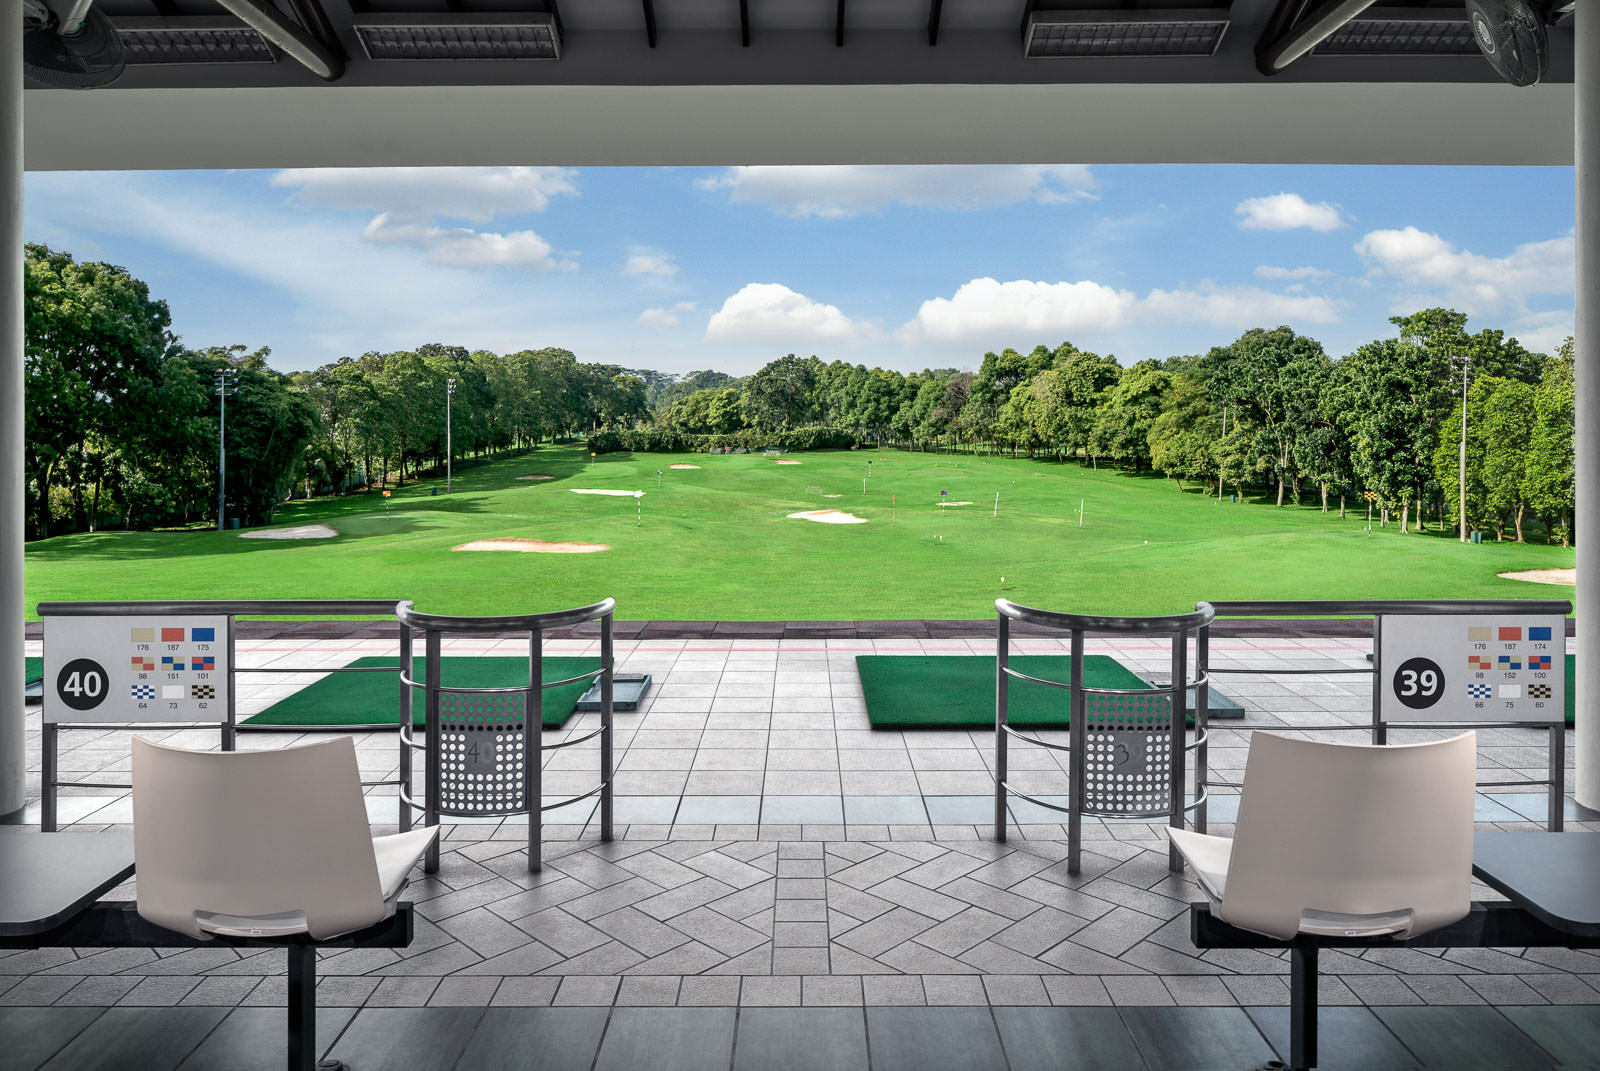 Interior photography of the seletar country club in singapore showing driving range with seats